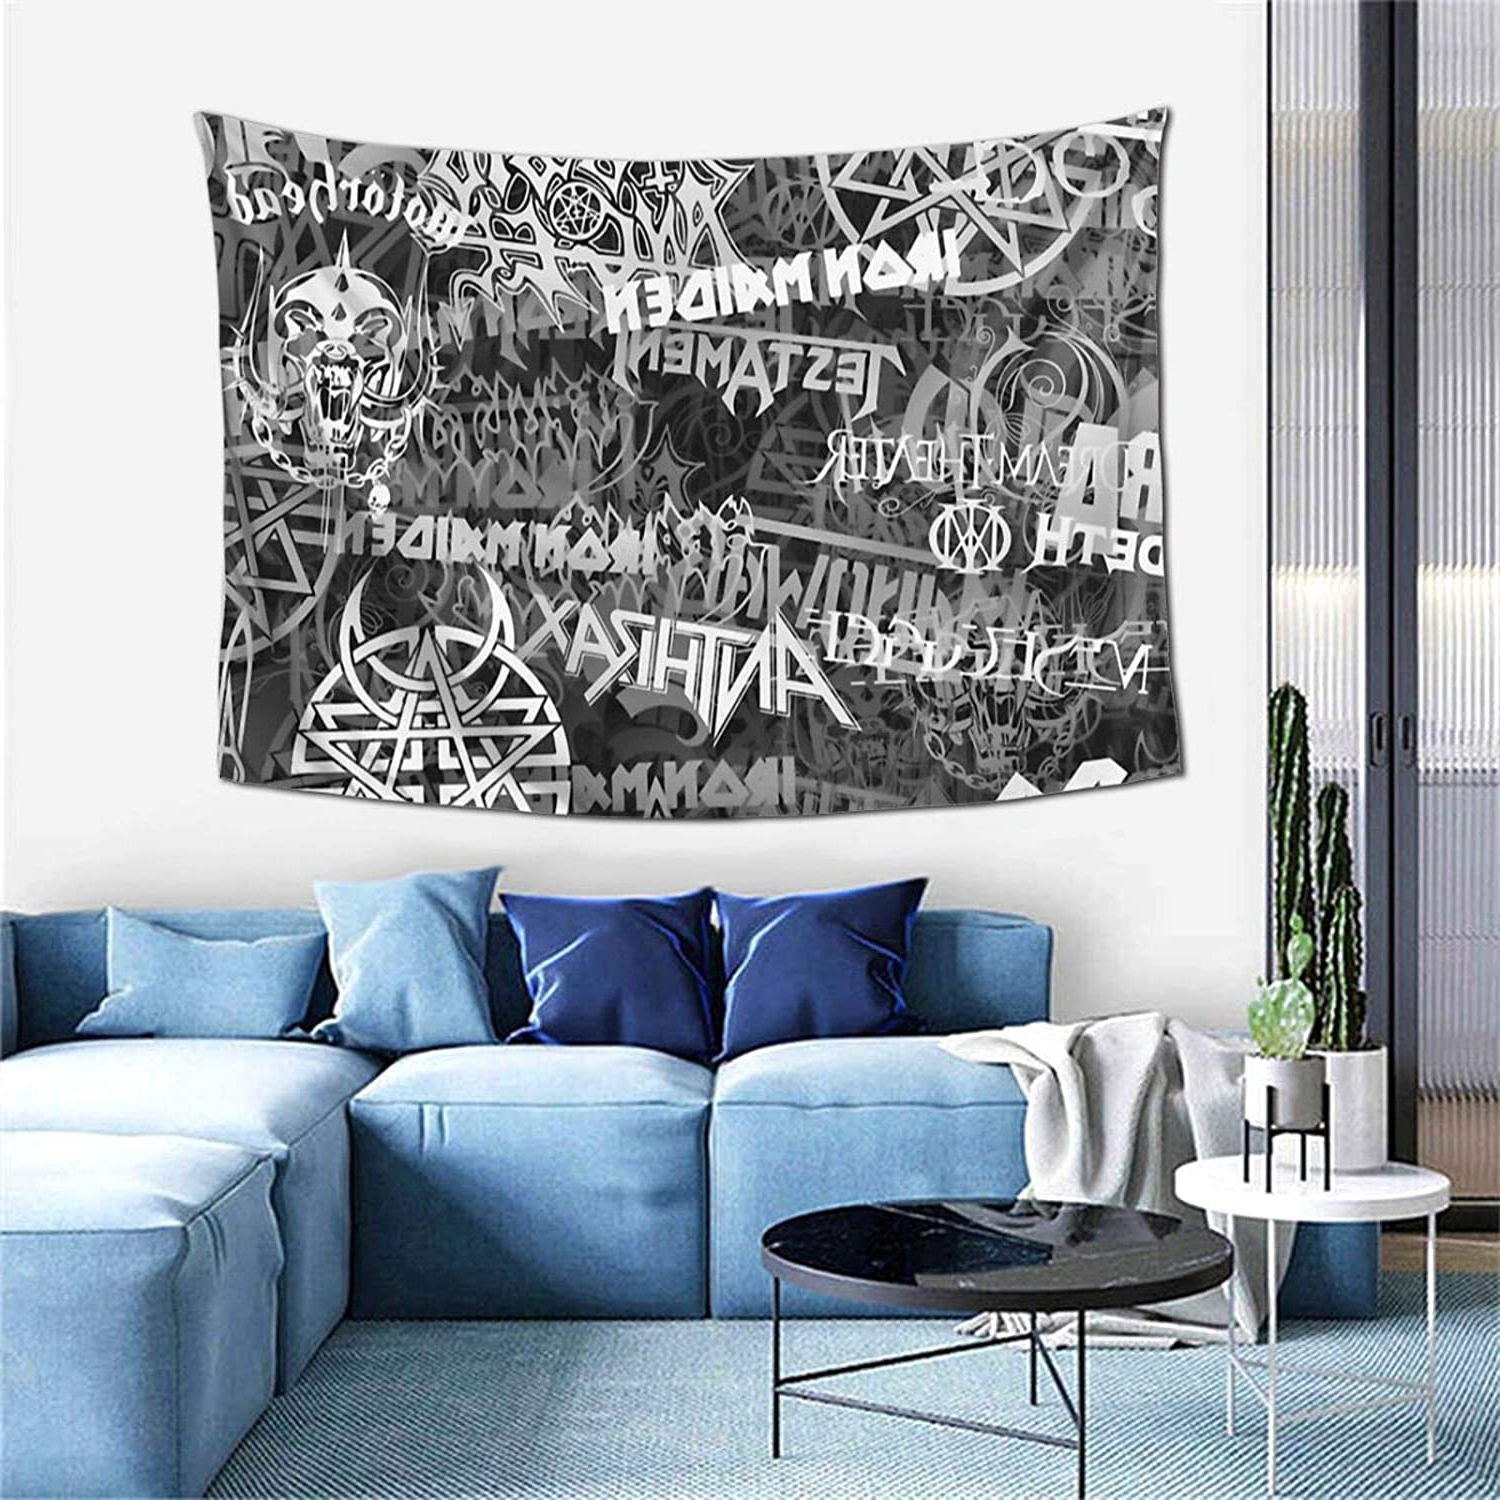 Recent Amazon: Heavy Metal Bands Tapestry Wall Hanging Anime Regarding Blended Fabric Ranier Wall Hangings With Hanging Accessories Included (View 20 of 20)